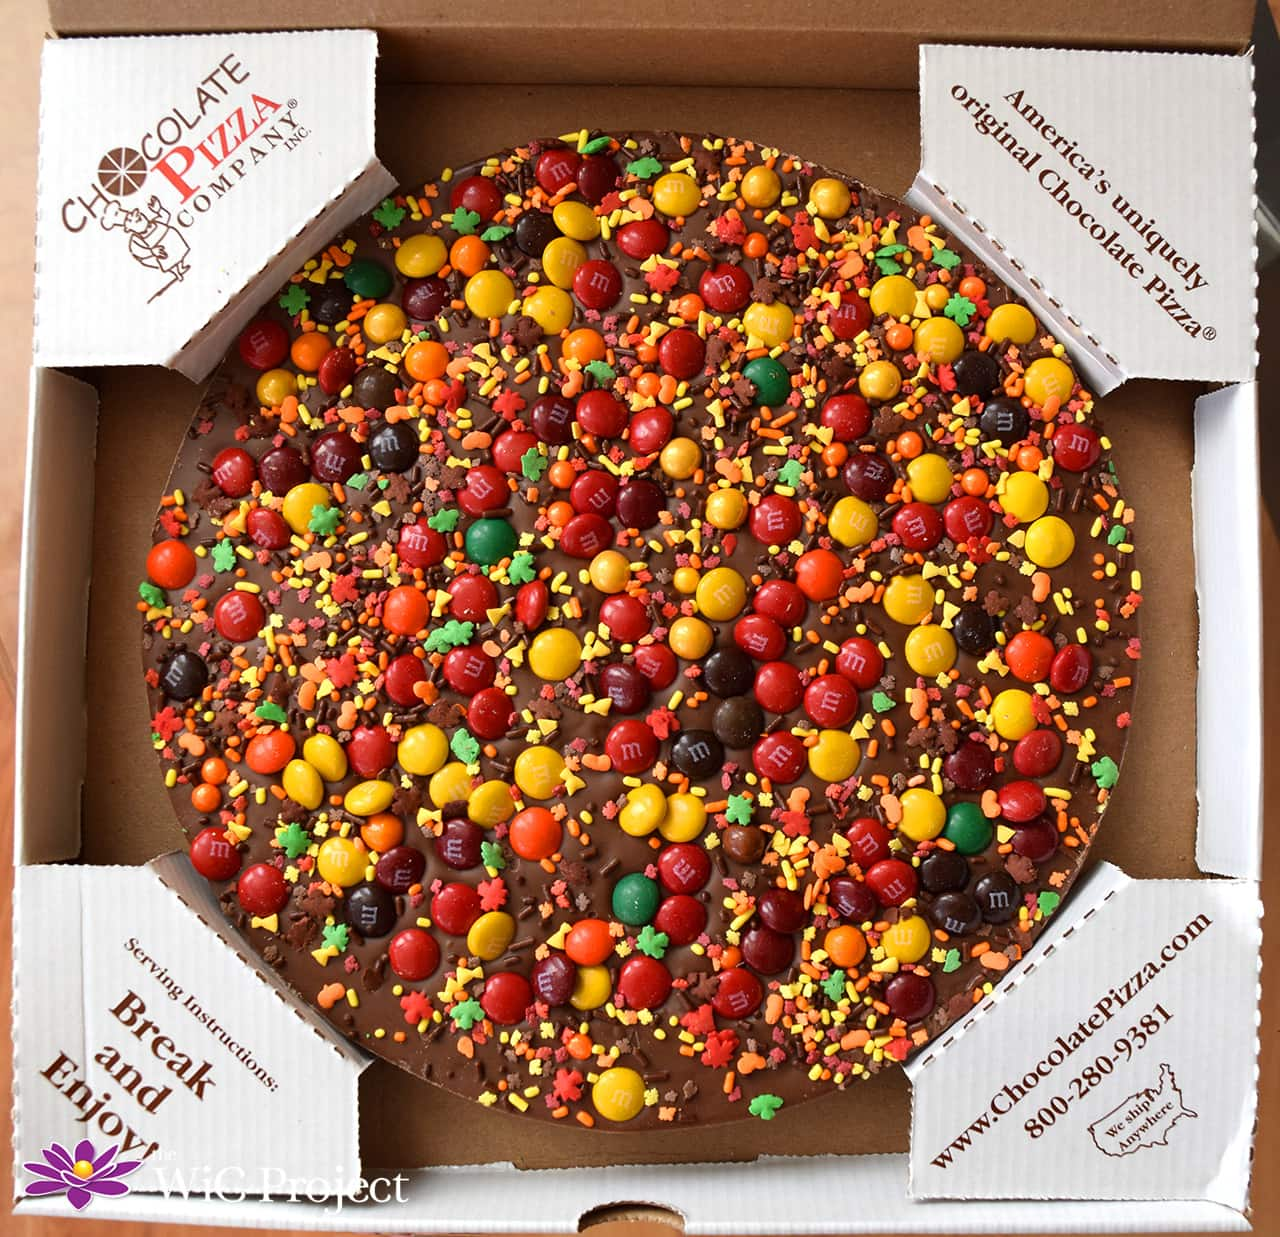 Love Chocolate? Get Chocolate Pizza Delivered with Chocolate Pizza Company